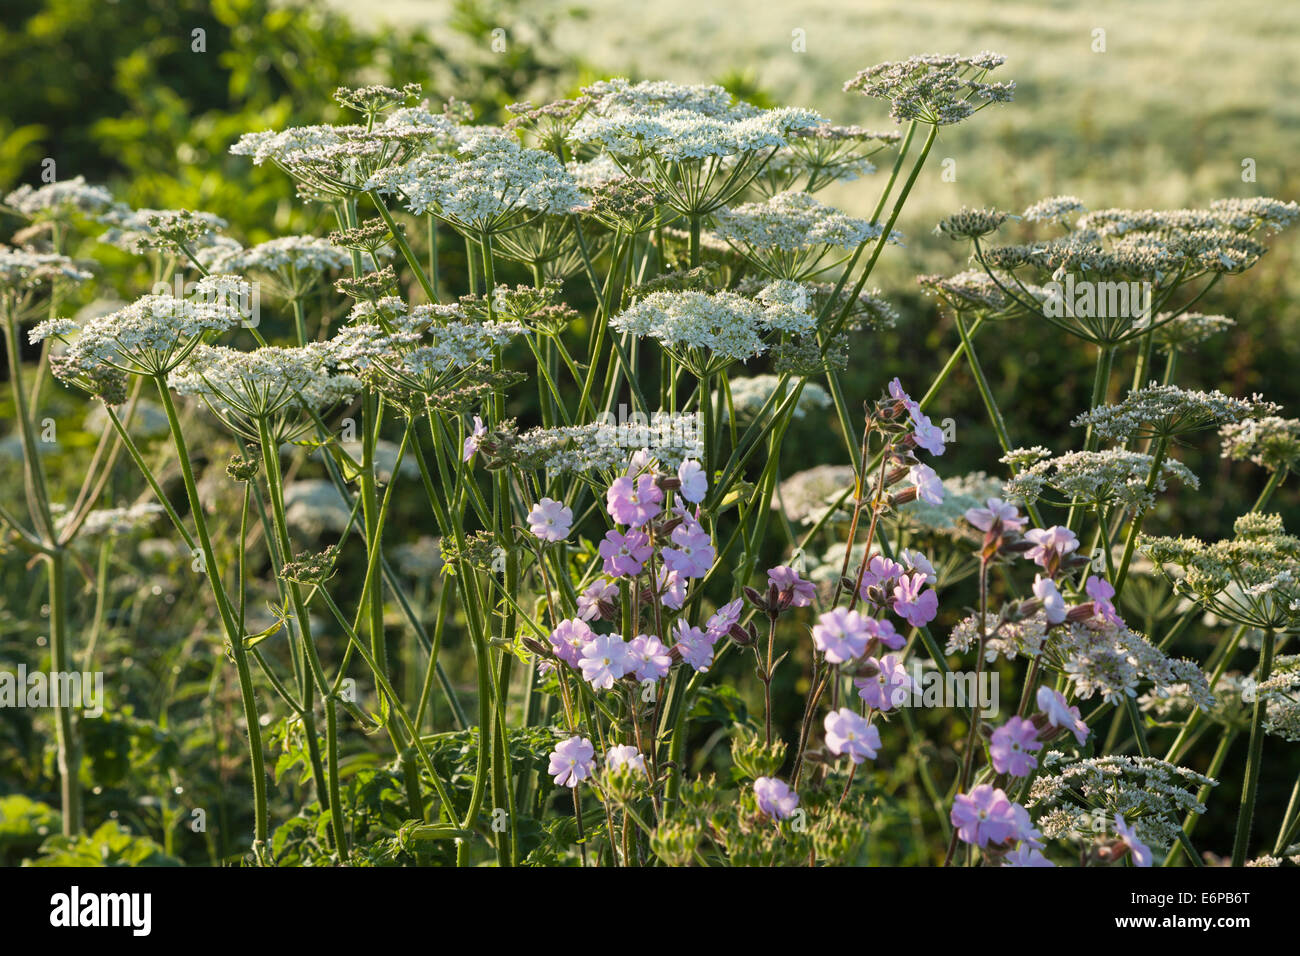 A roadside hedgerow and wildflowers in early morning light near Harlestone in Northamptonshire, England. Stock Photo